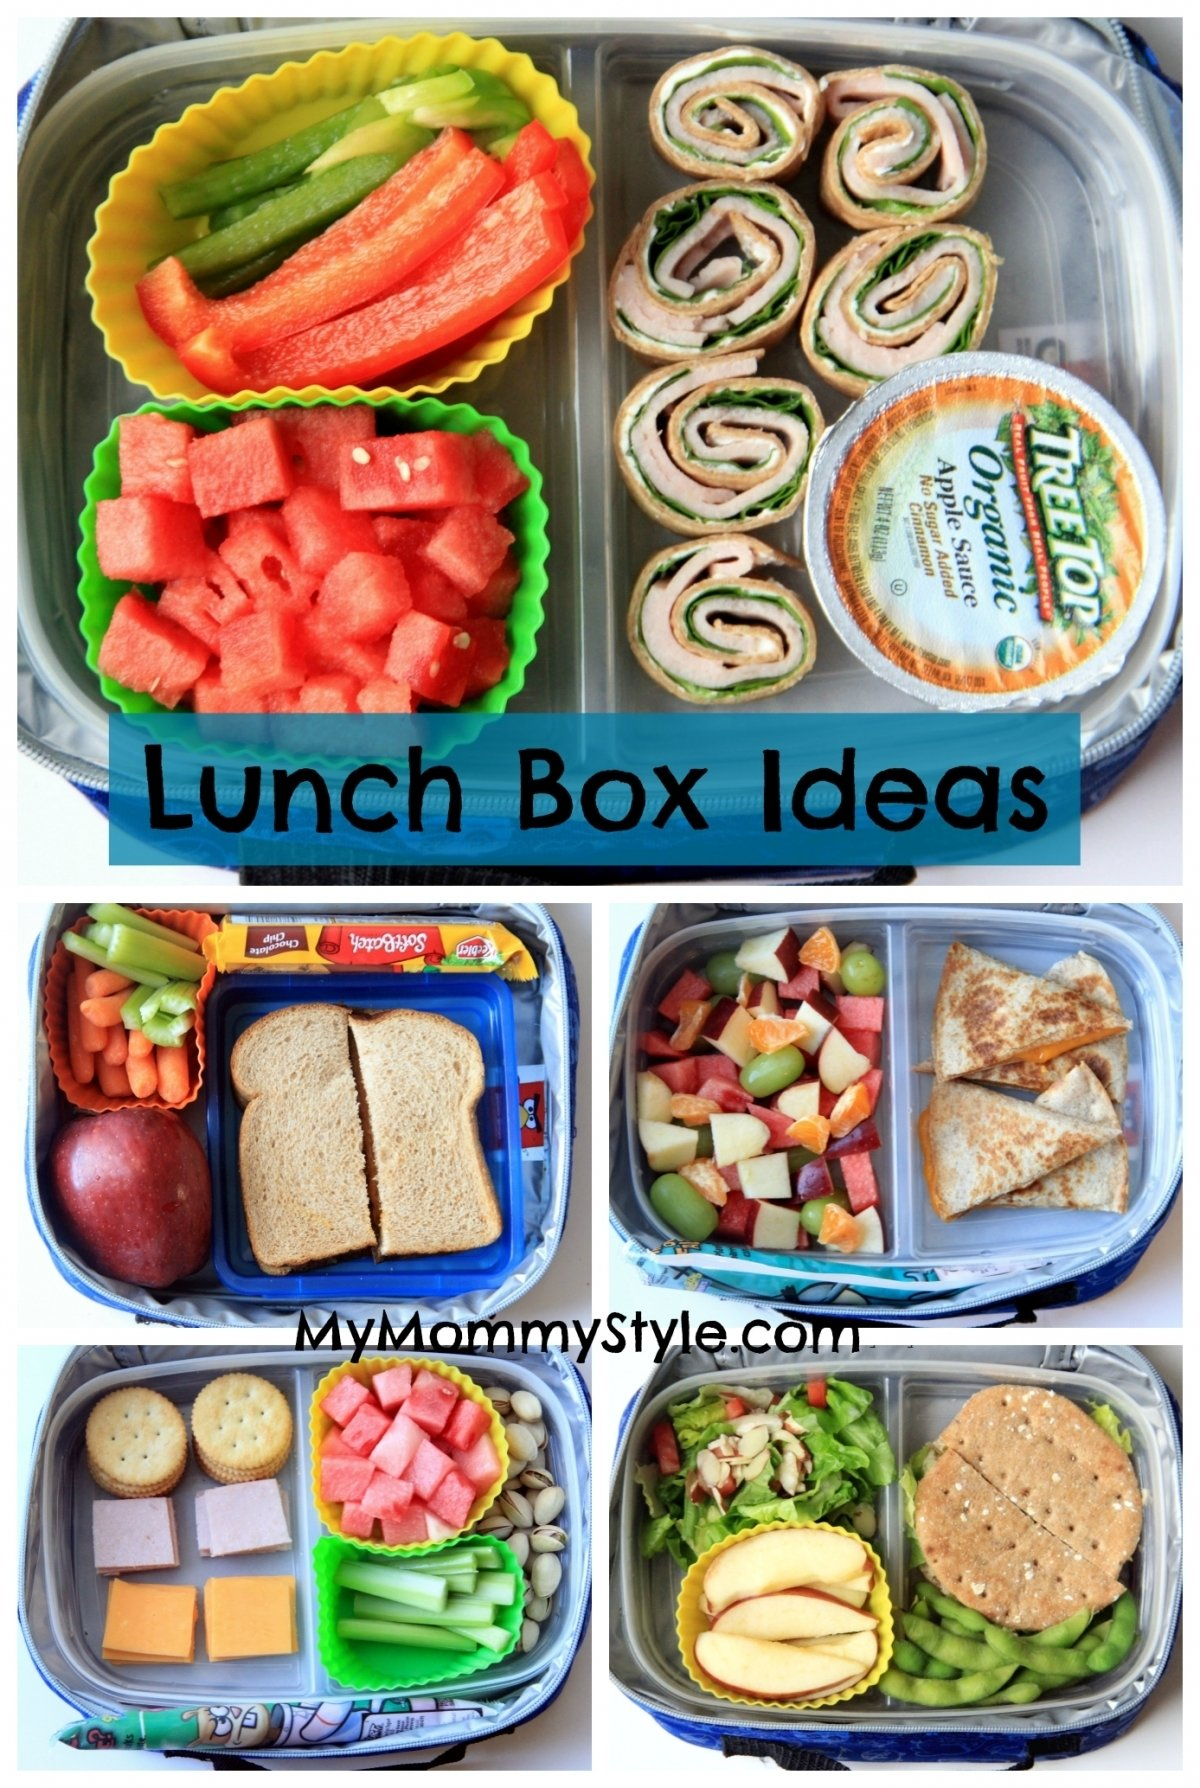 10 Nice Lunch Ideas For School Lunch Box lunch box ideas kid lunches school lunch cold lunch ideas healthy 2 2020